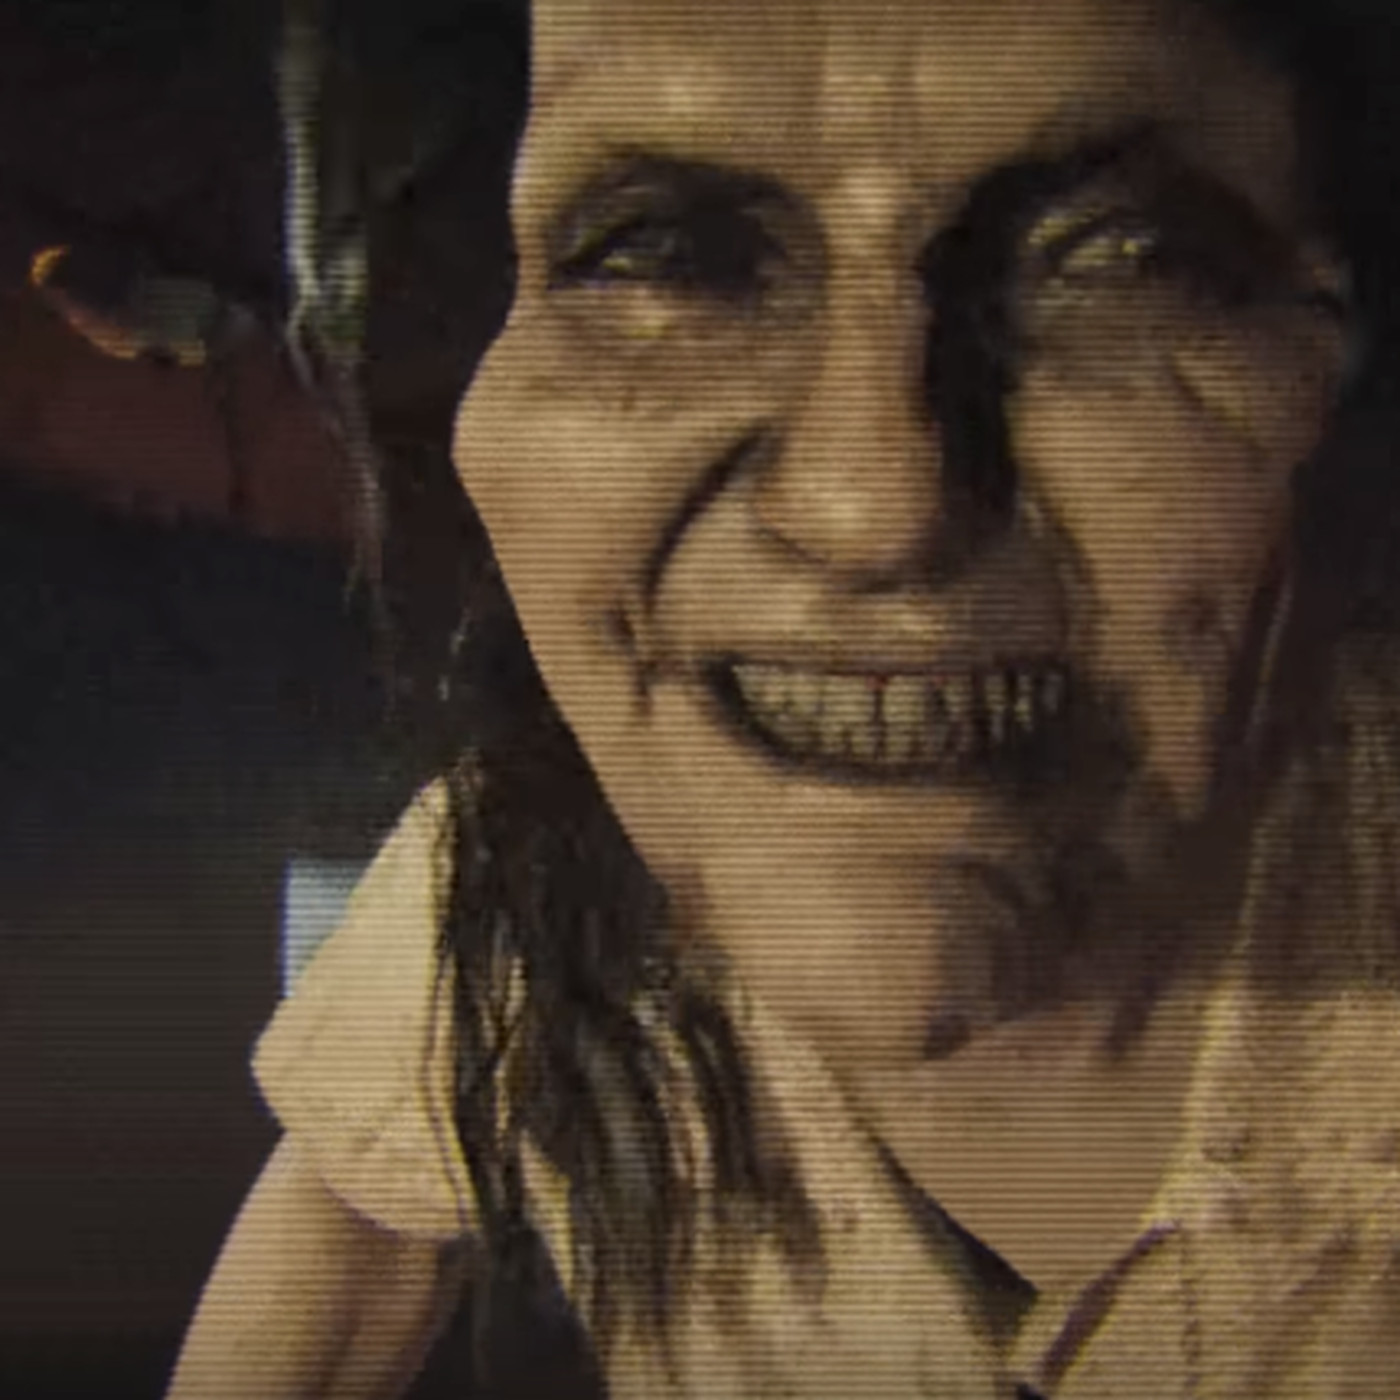 Resident Evil 7 S First Dlc Features A Creepy Clever Escape Room